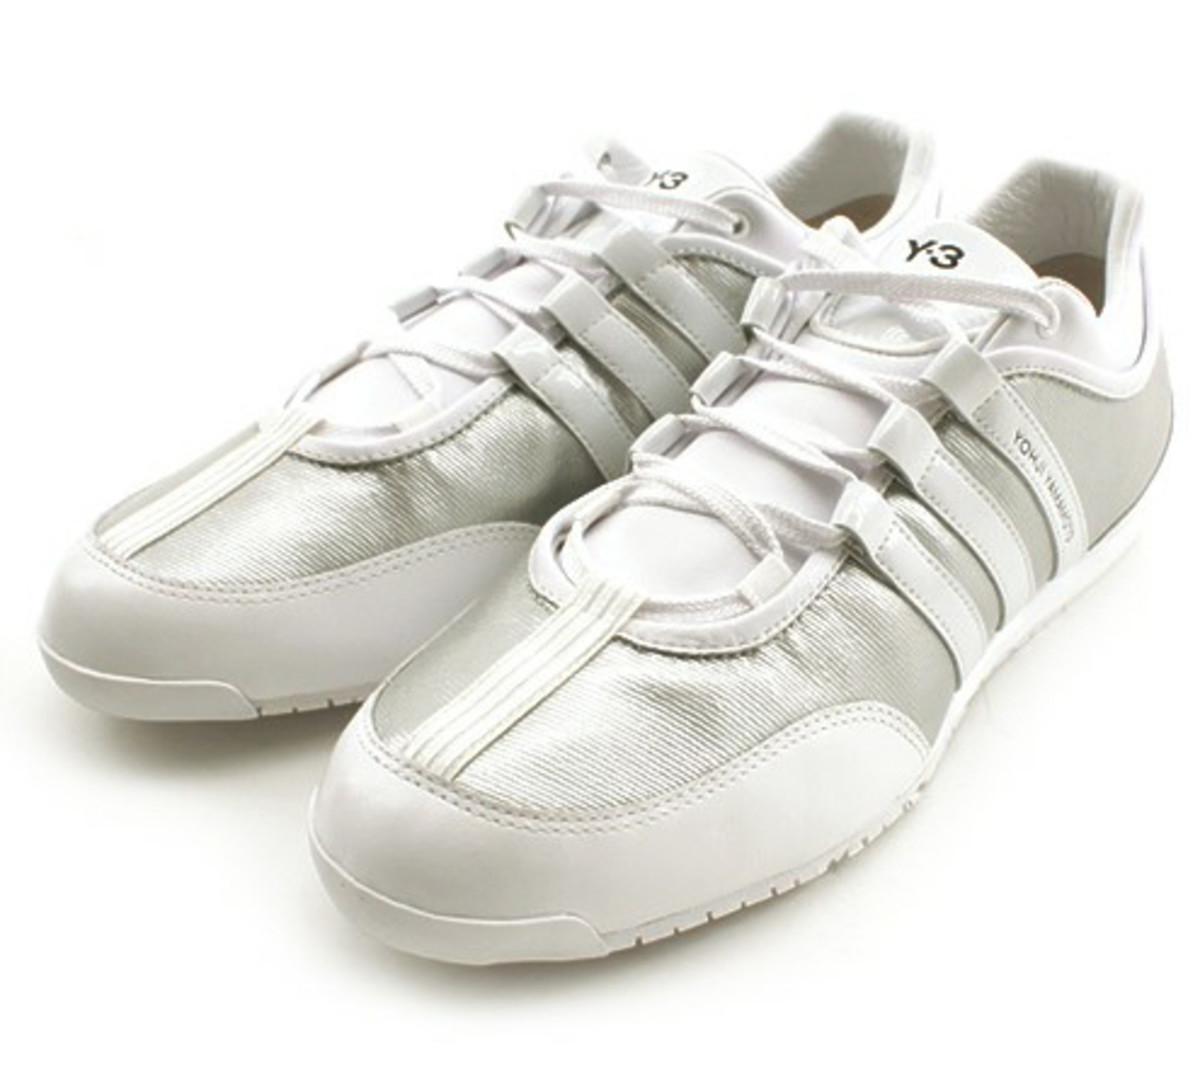 adidas-y-3-spring-summer-2010-boxing-classic-04